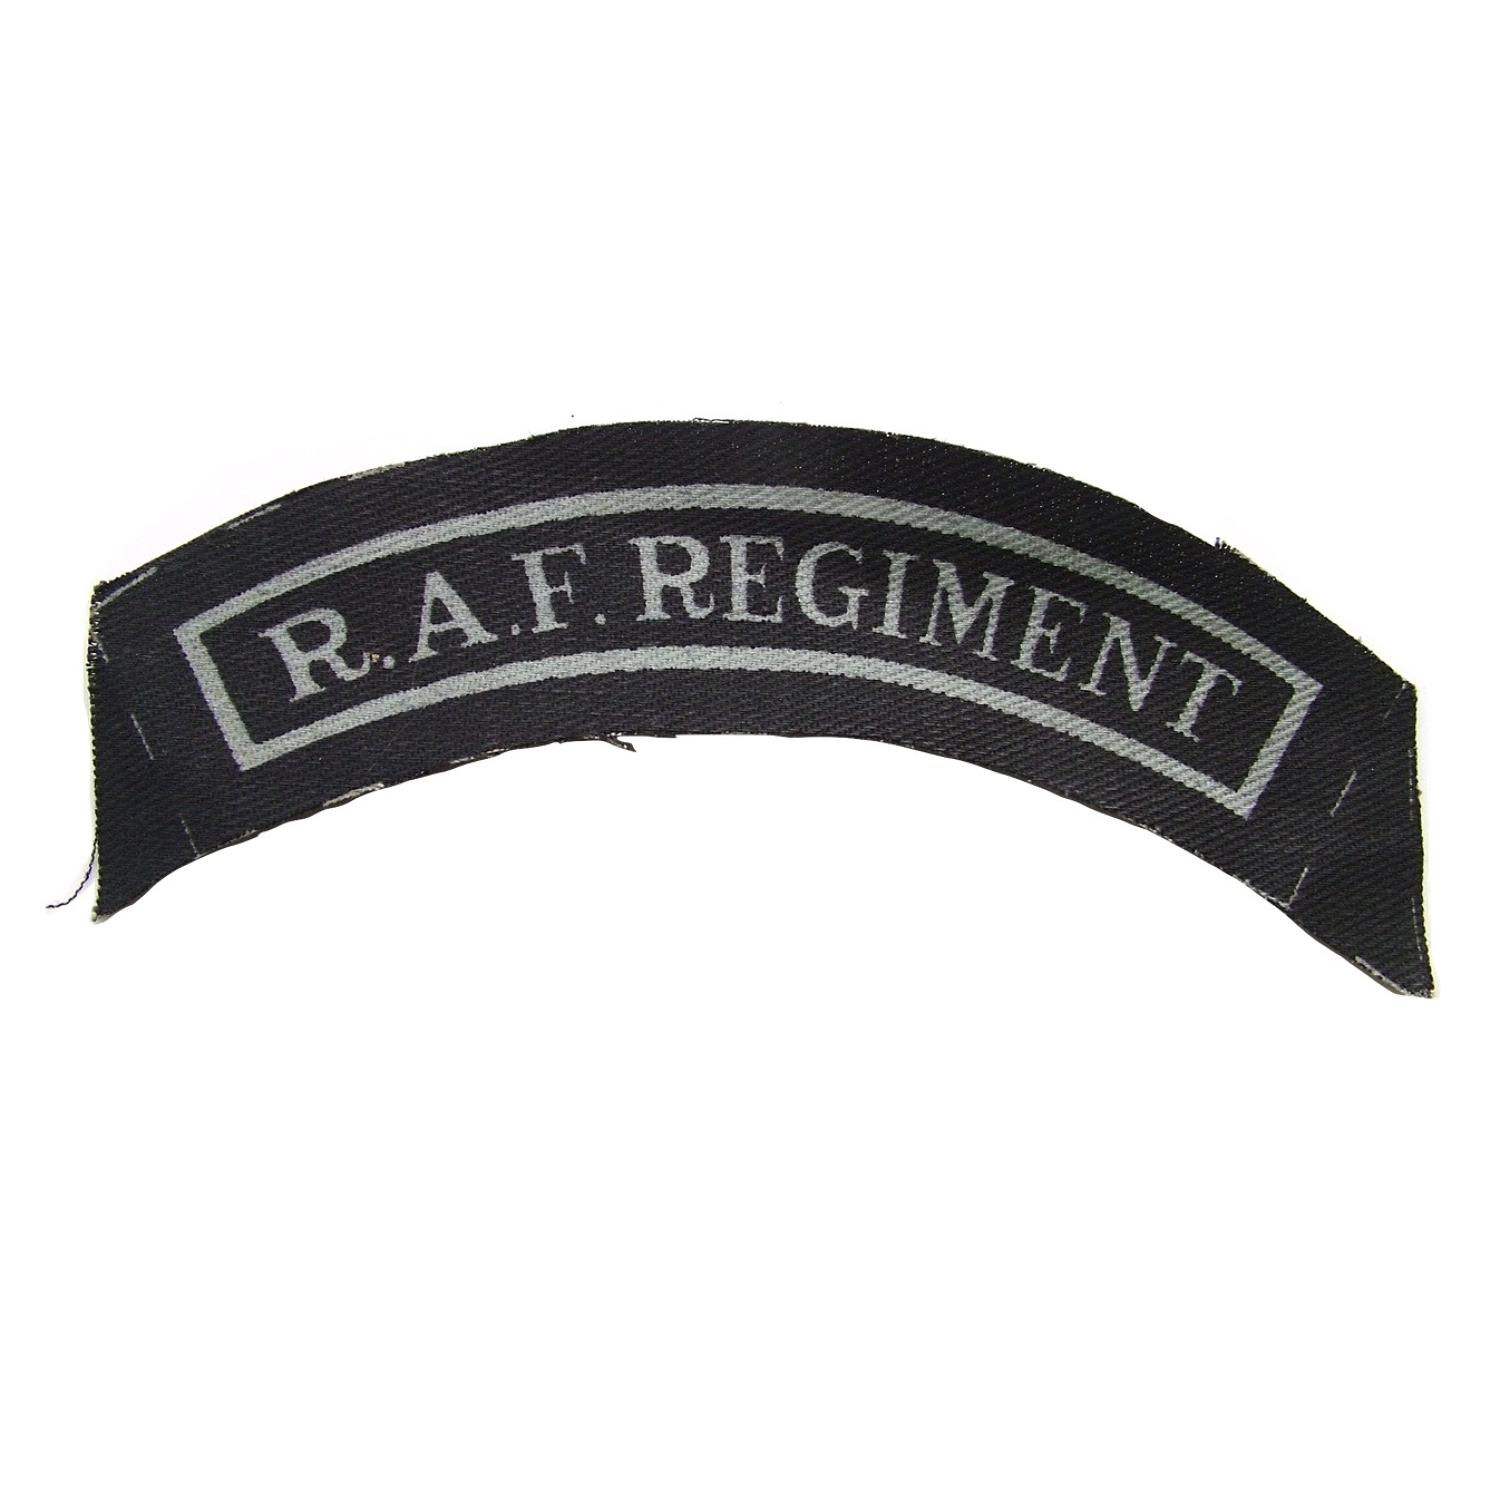 RAF Regiment shoulder title